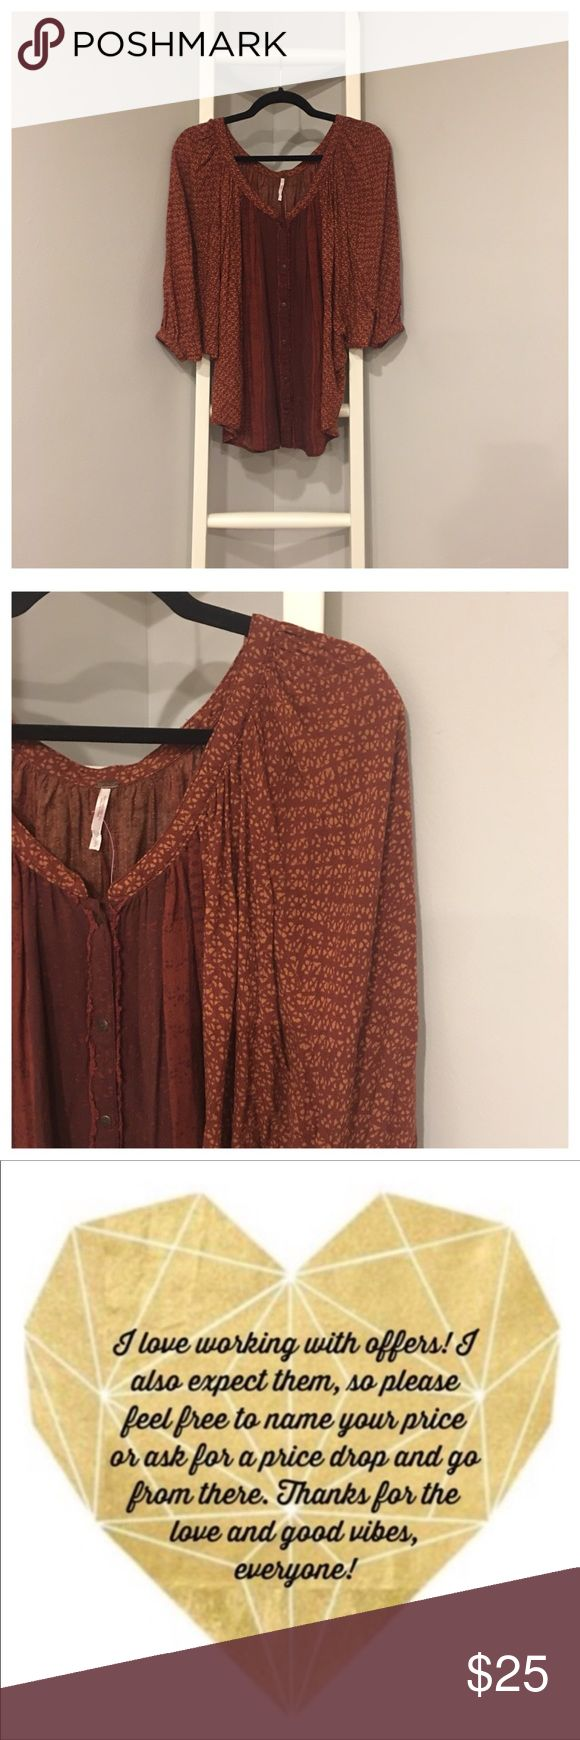 Free People Burgundy Boho Chic Dolman Sleeve Top S Free People Burgundy and terra-cotta/burnt orange Dolman Sleeve batwing Top with button down front. Lots of cute boho chic detailing to this top! Love the way Free people makes their tops! This is very unique and has lots of nice detailing on it to make it a stand out top. I love the way Dolman sleeves hang on people, it's a very flattering and elegant look that would look great tucked into a skirt among other things. Size S Excellent…